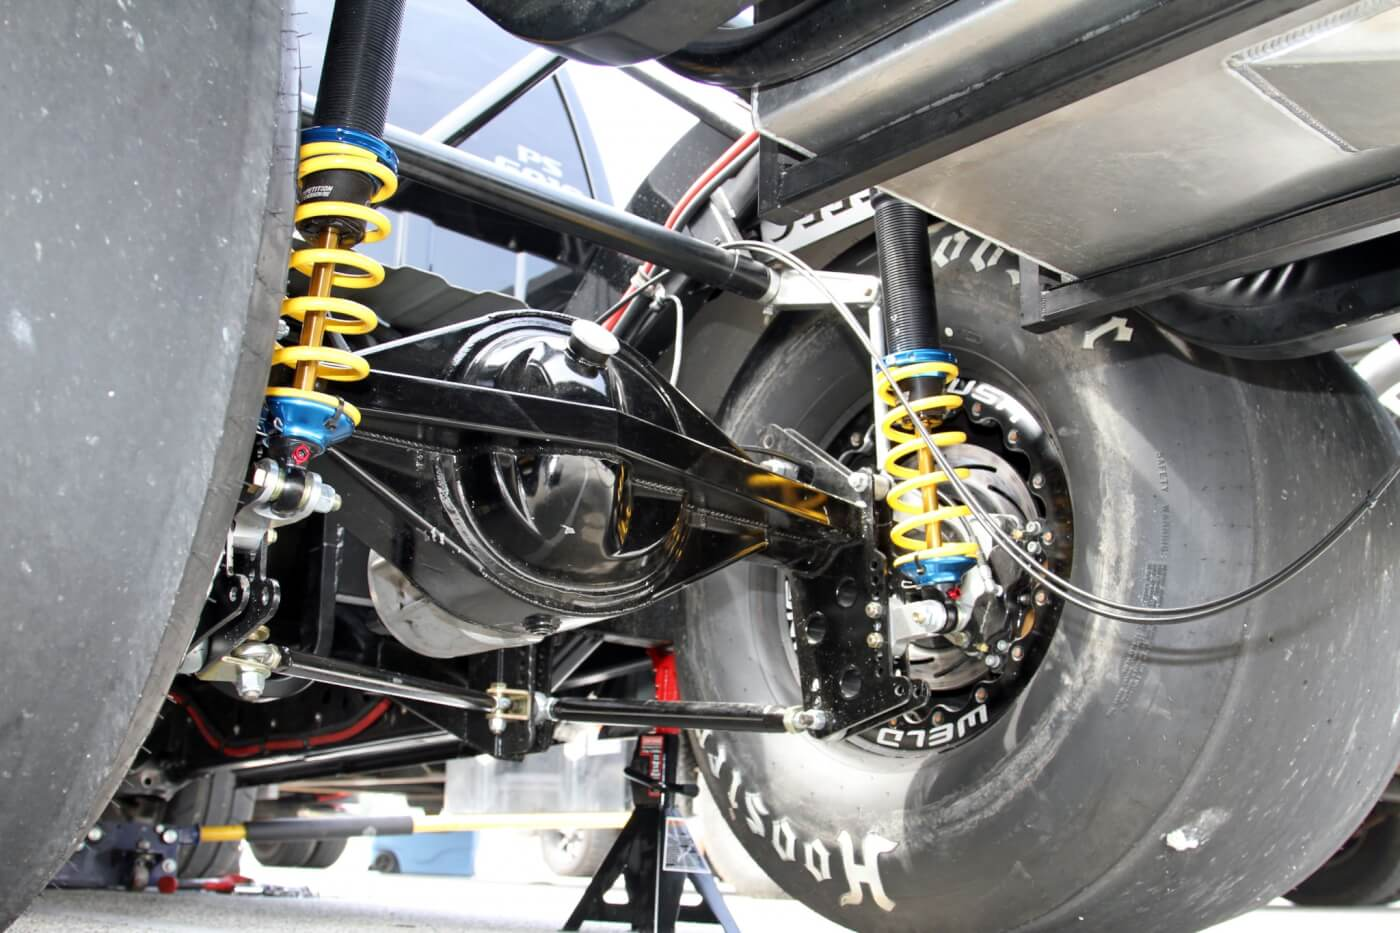 The new frame rails and 4-link suspension were installed to make room for these huge Hoosier drag slicks that are necessary to put the power to the track. Notice the Strange Engineering Pro-Race 9.5 rear axle and Competition Suspension coil over shocks: this truck is built for one purpose—to go fast.